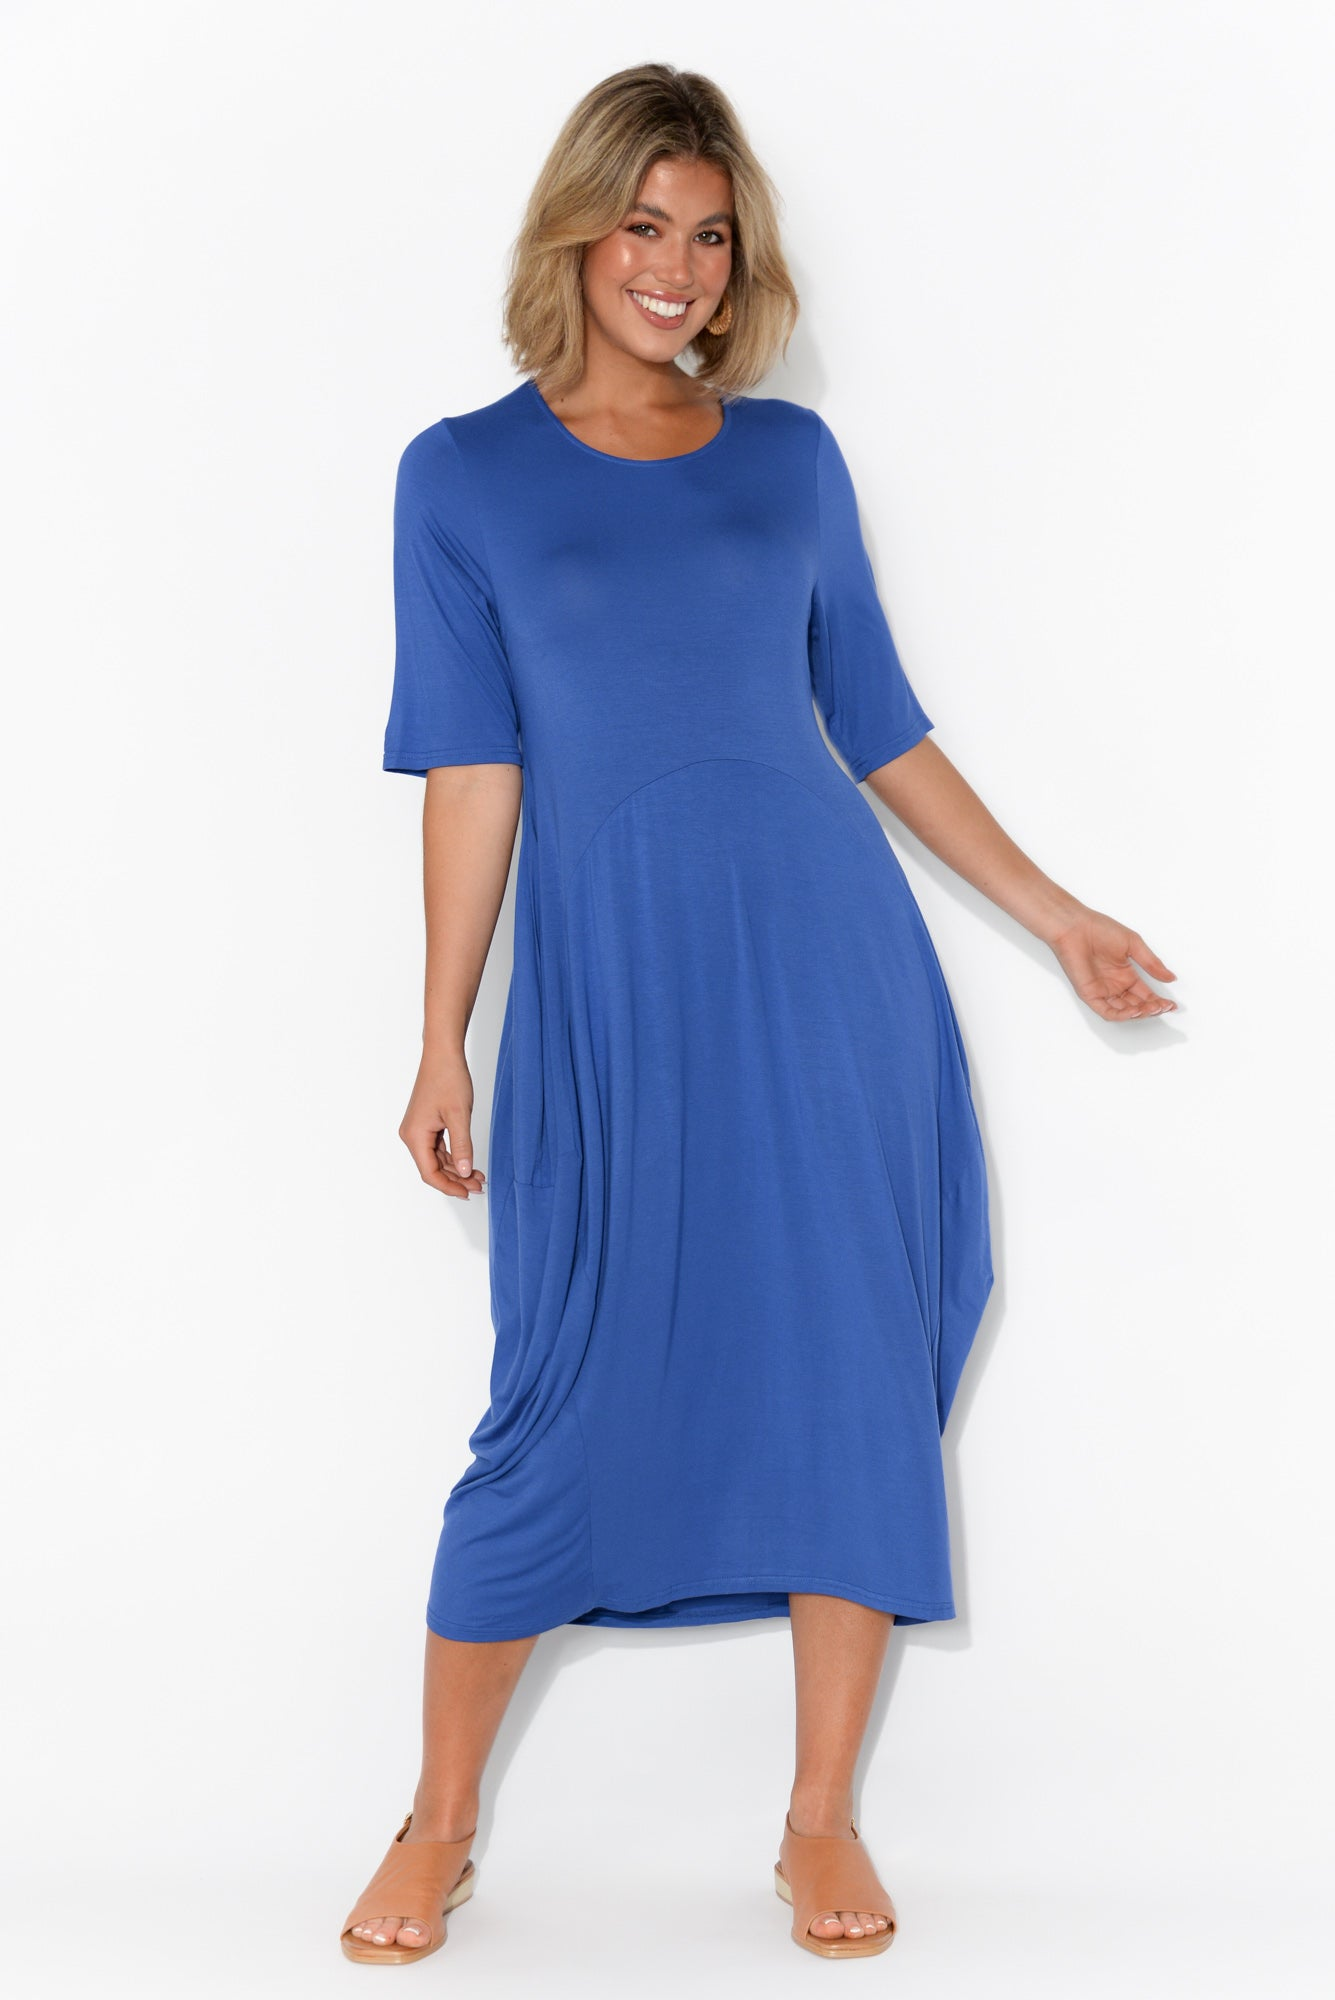 Rachel Cobalt Bamboo Dress